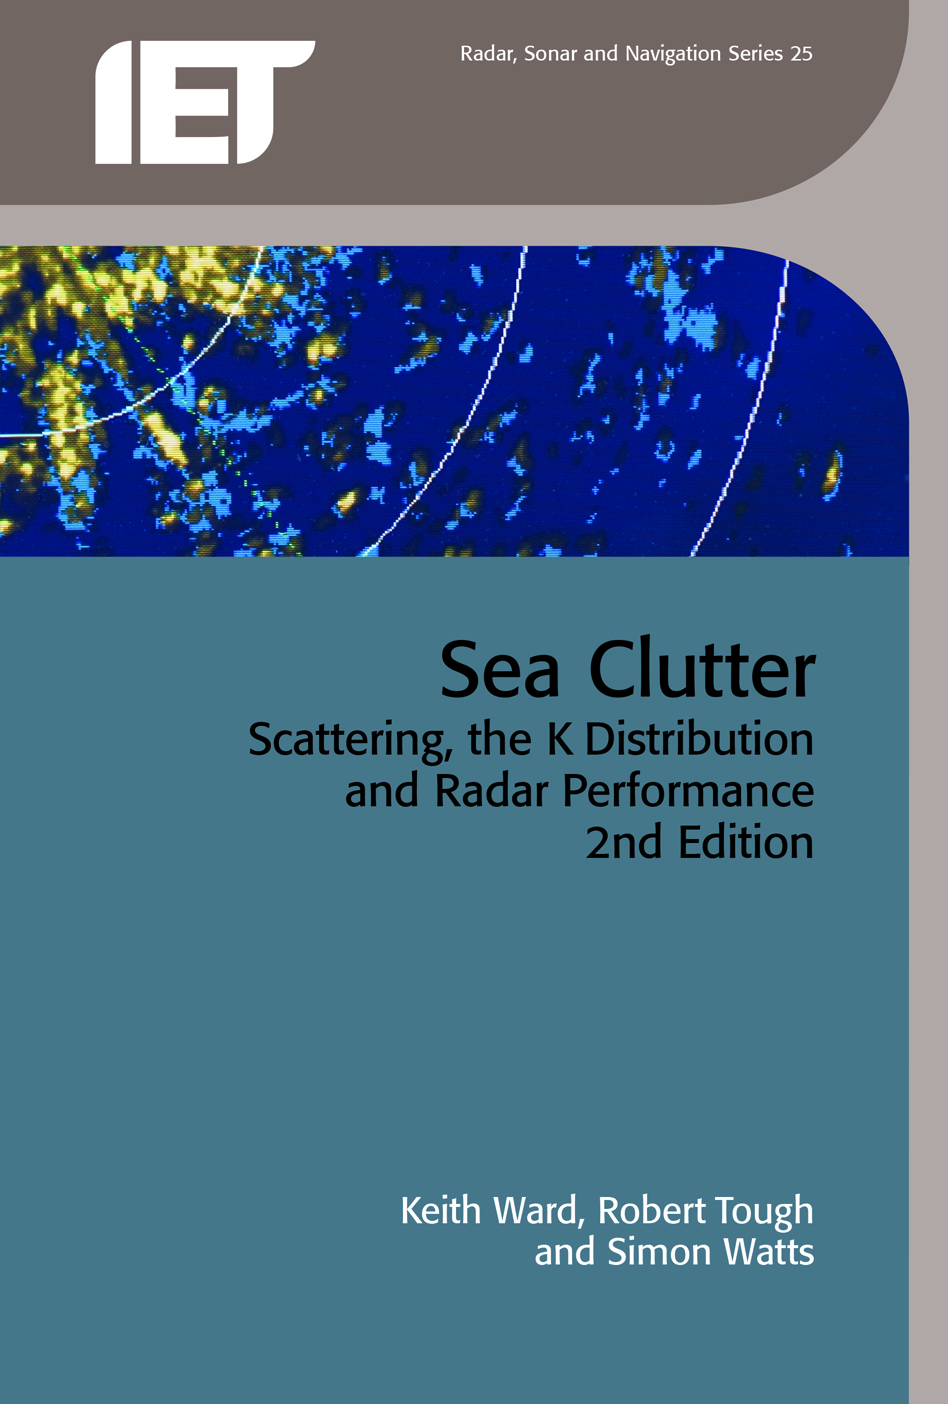 Sea Clutter, Scattering, the K distribution and radar performance, 2nd Edition